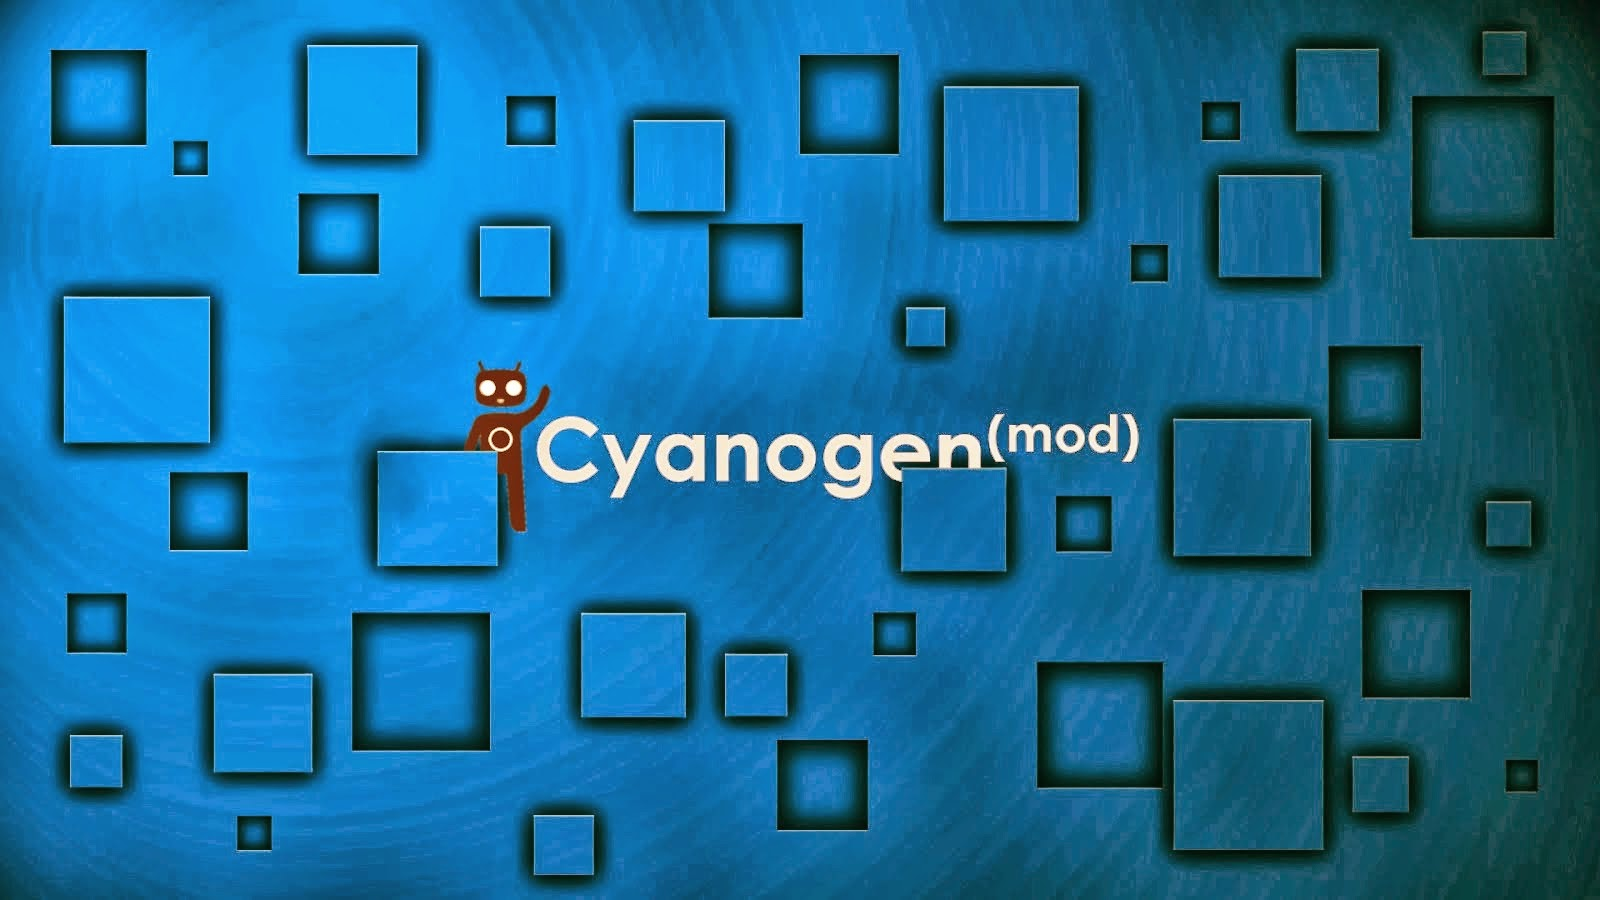 CyanogenMod for S4 mini Sprint